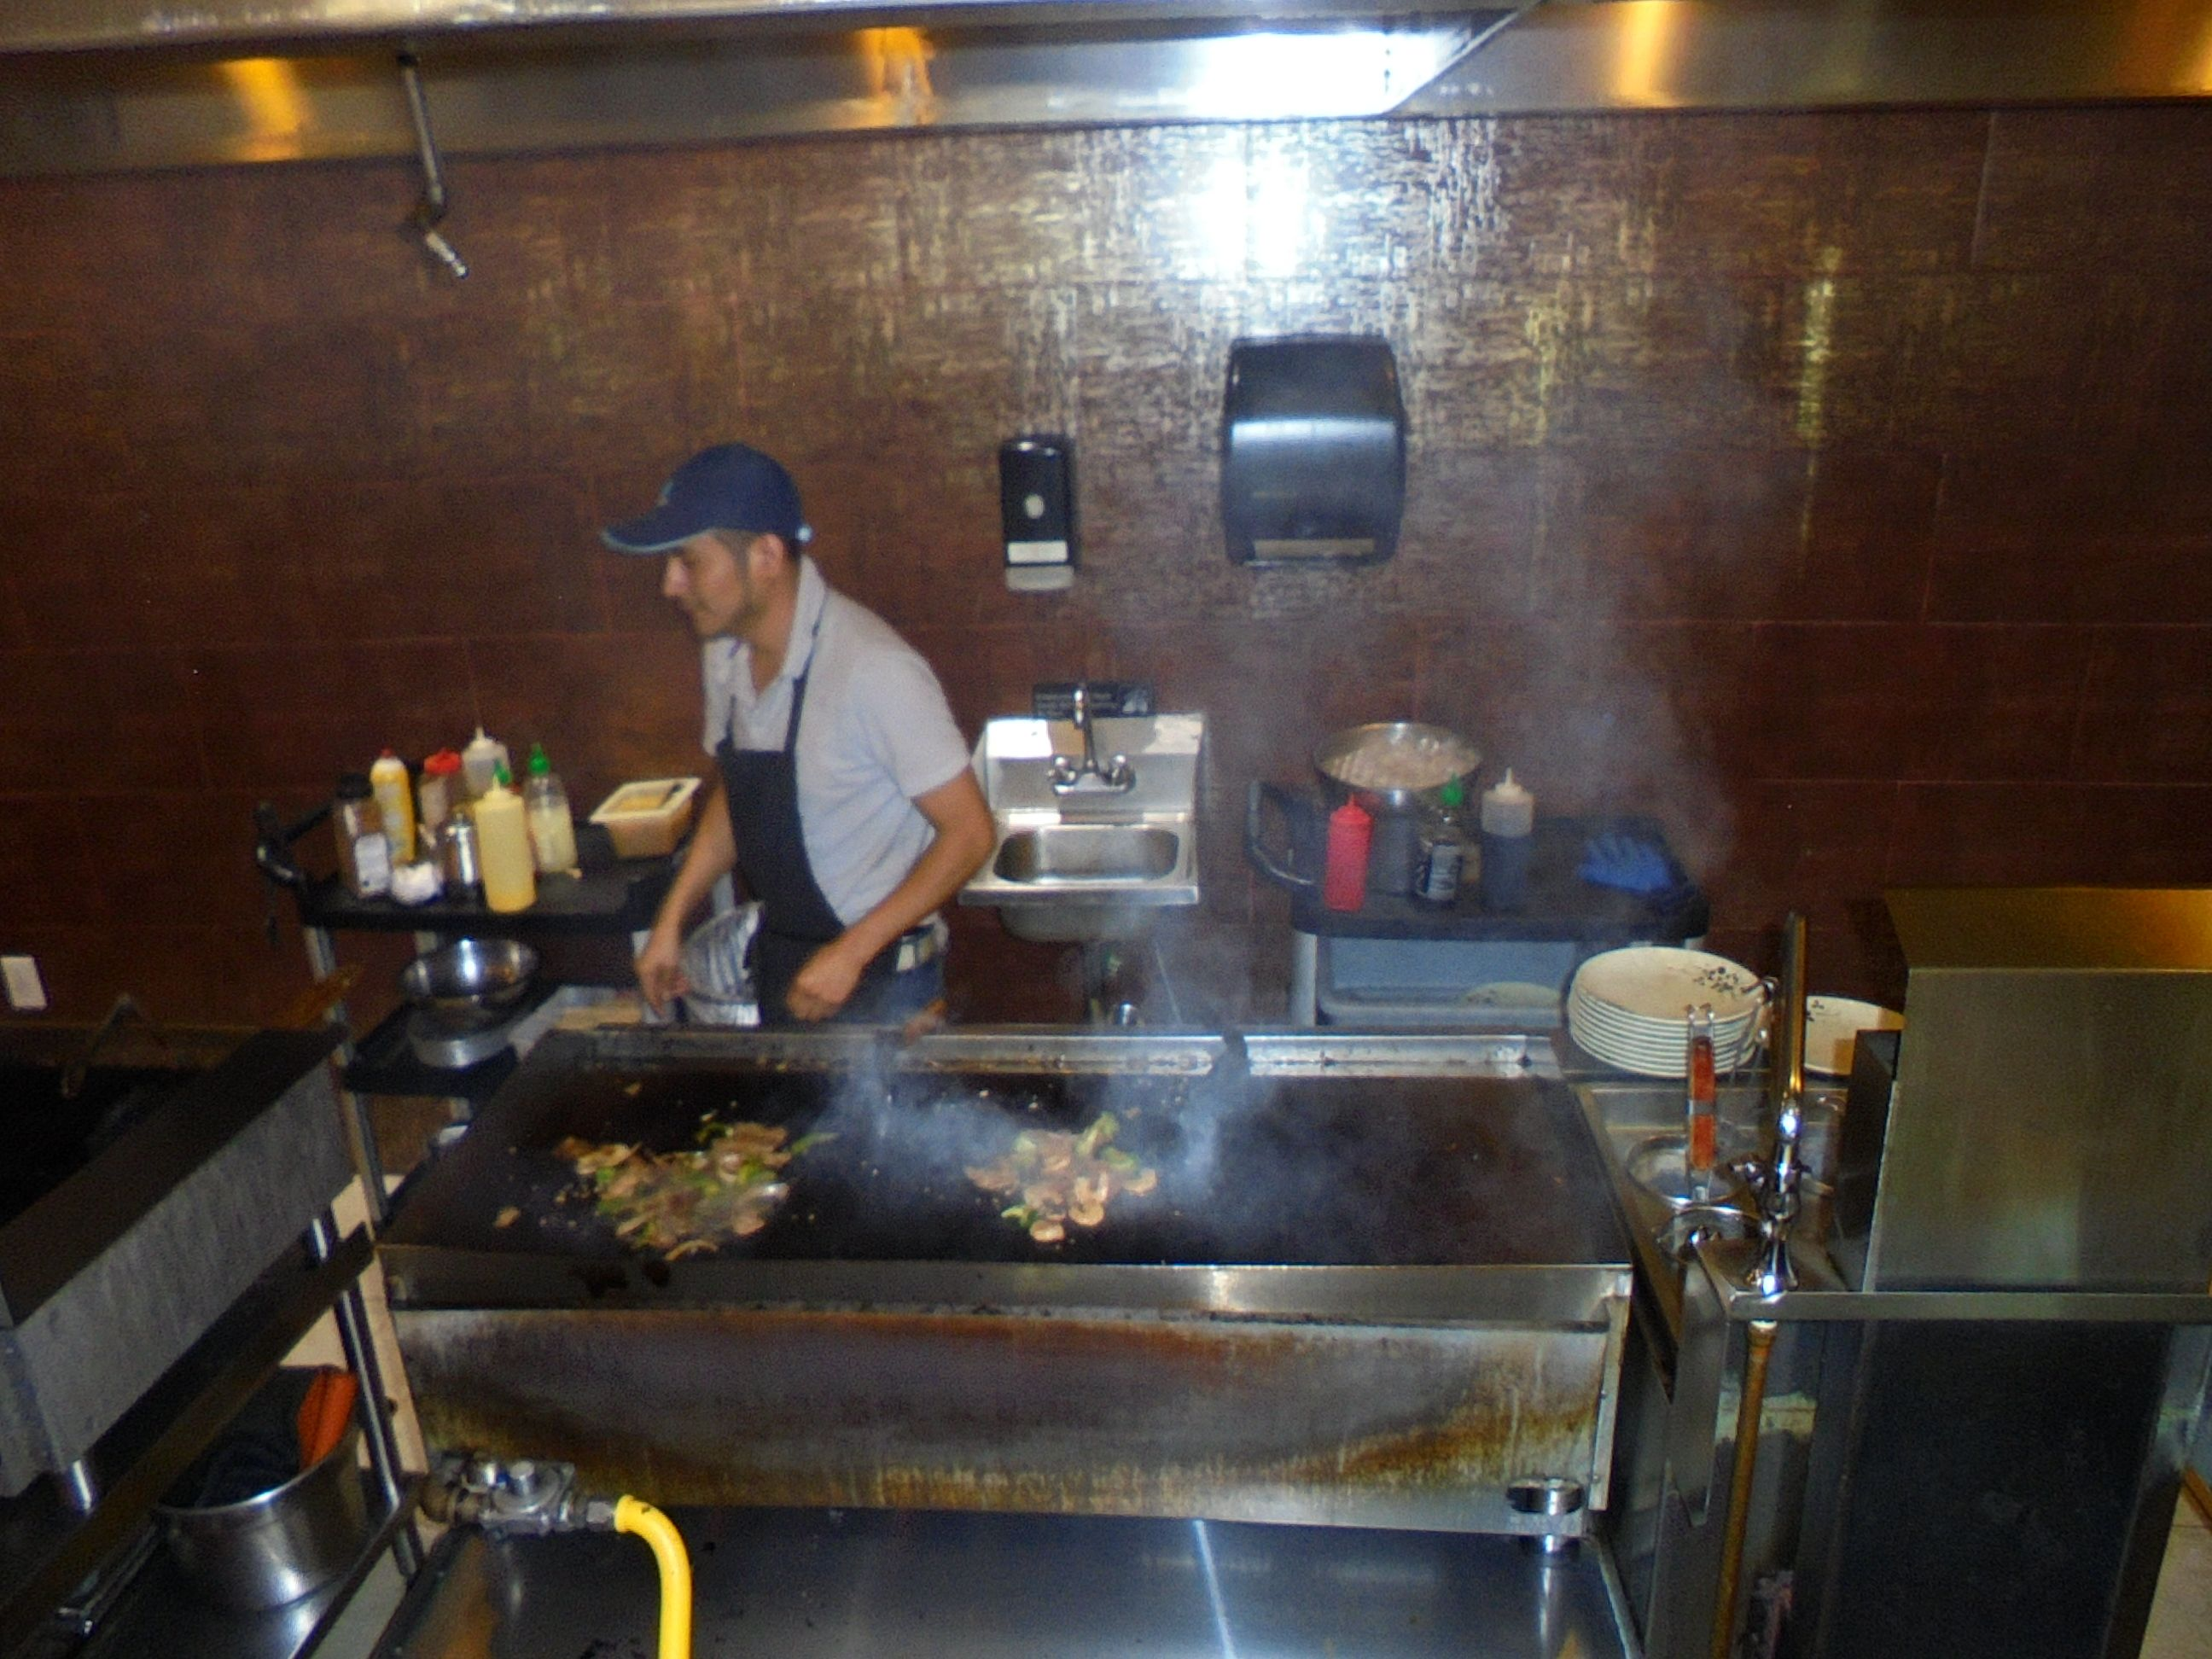 #grilling #Hibachifood in #Philadelphia @ #Panasian on #RooseveltBlvd in #Philly - www.drewrynewsnetwork.com